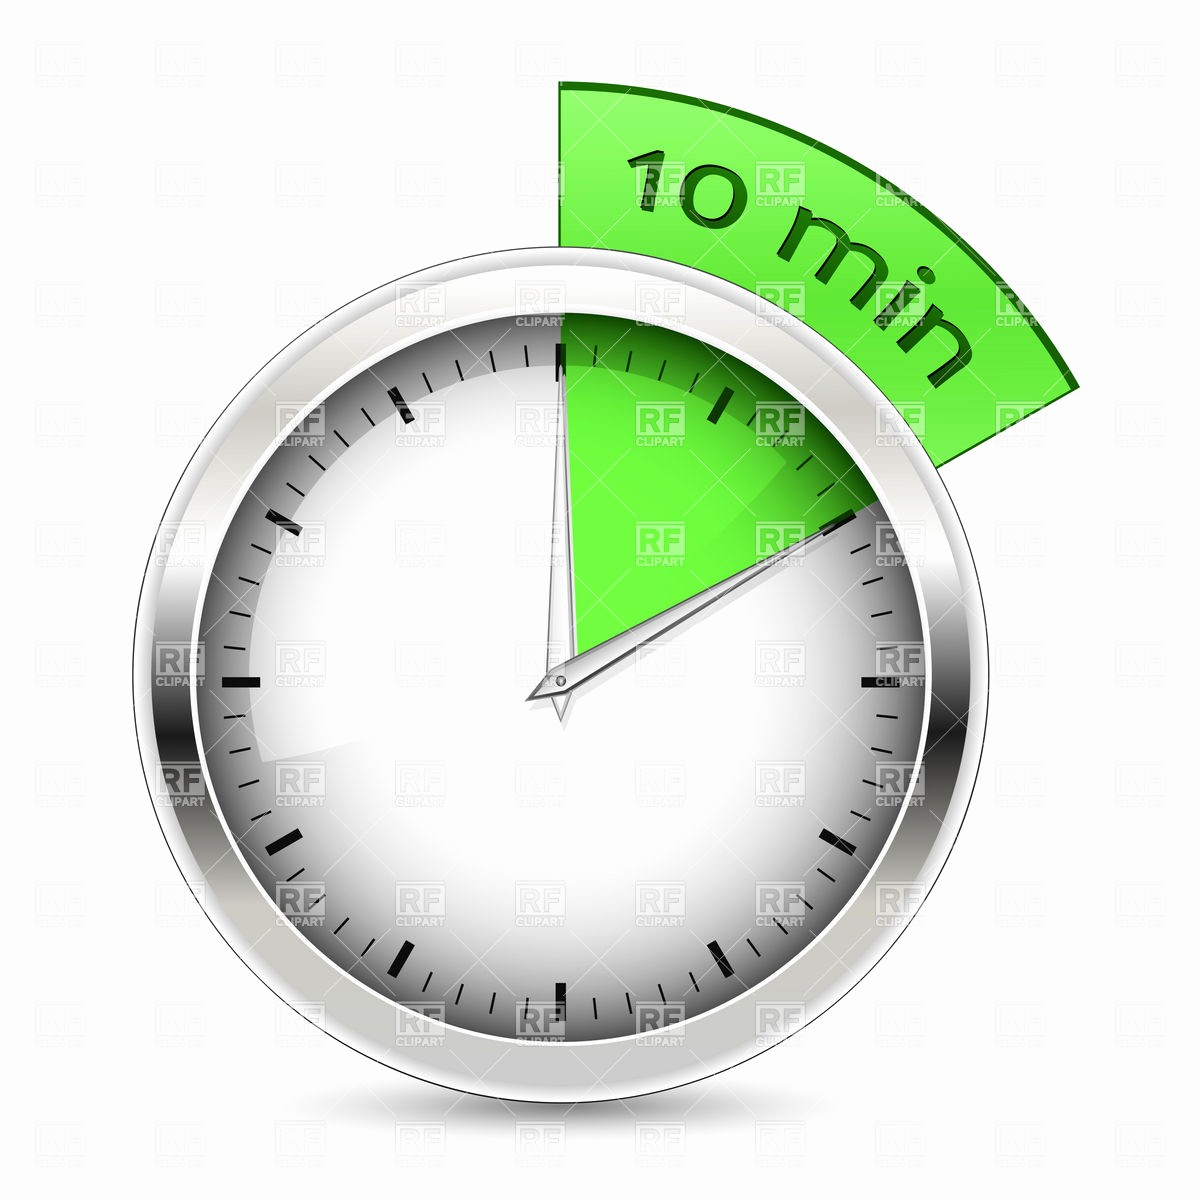 10 Minute Timer with Buzzer Luxury 10 Minutes Timer Vector Image Of Objects © Frbird 6005